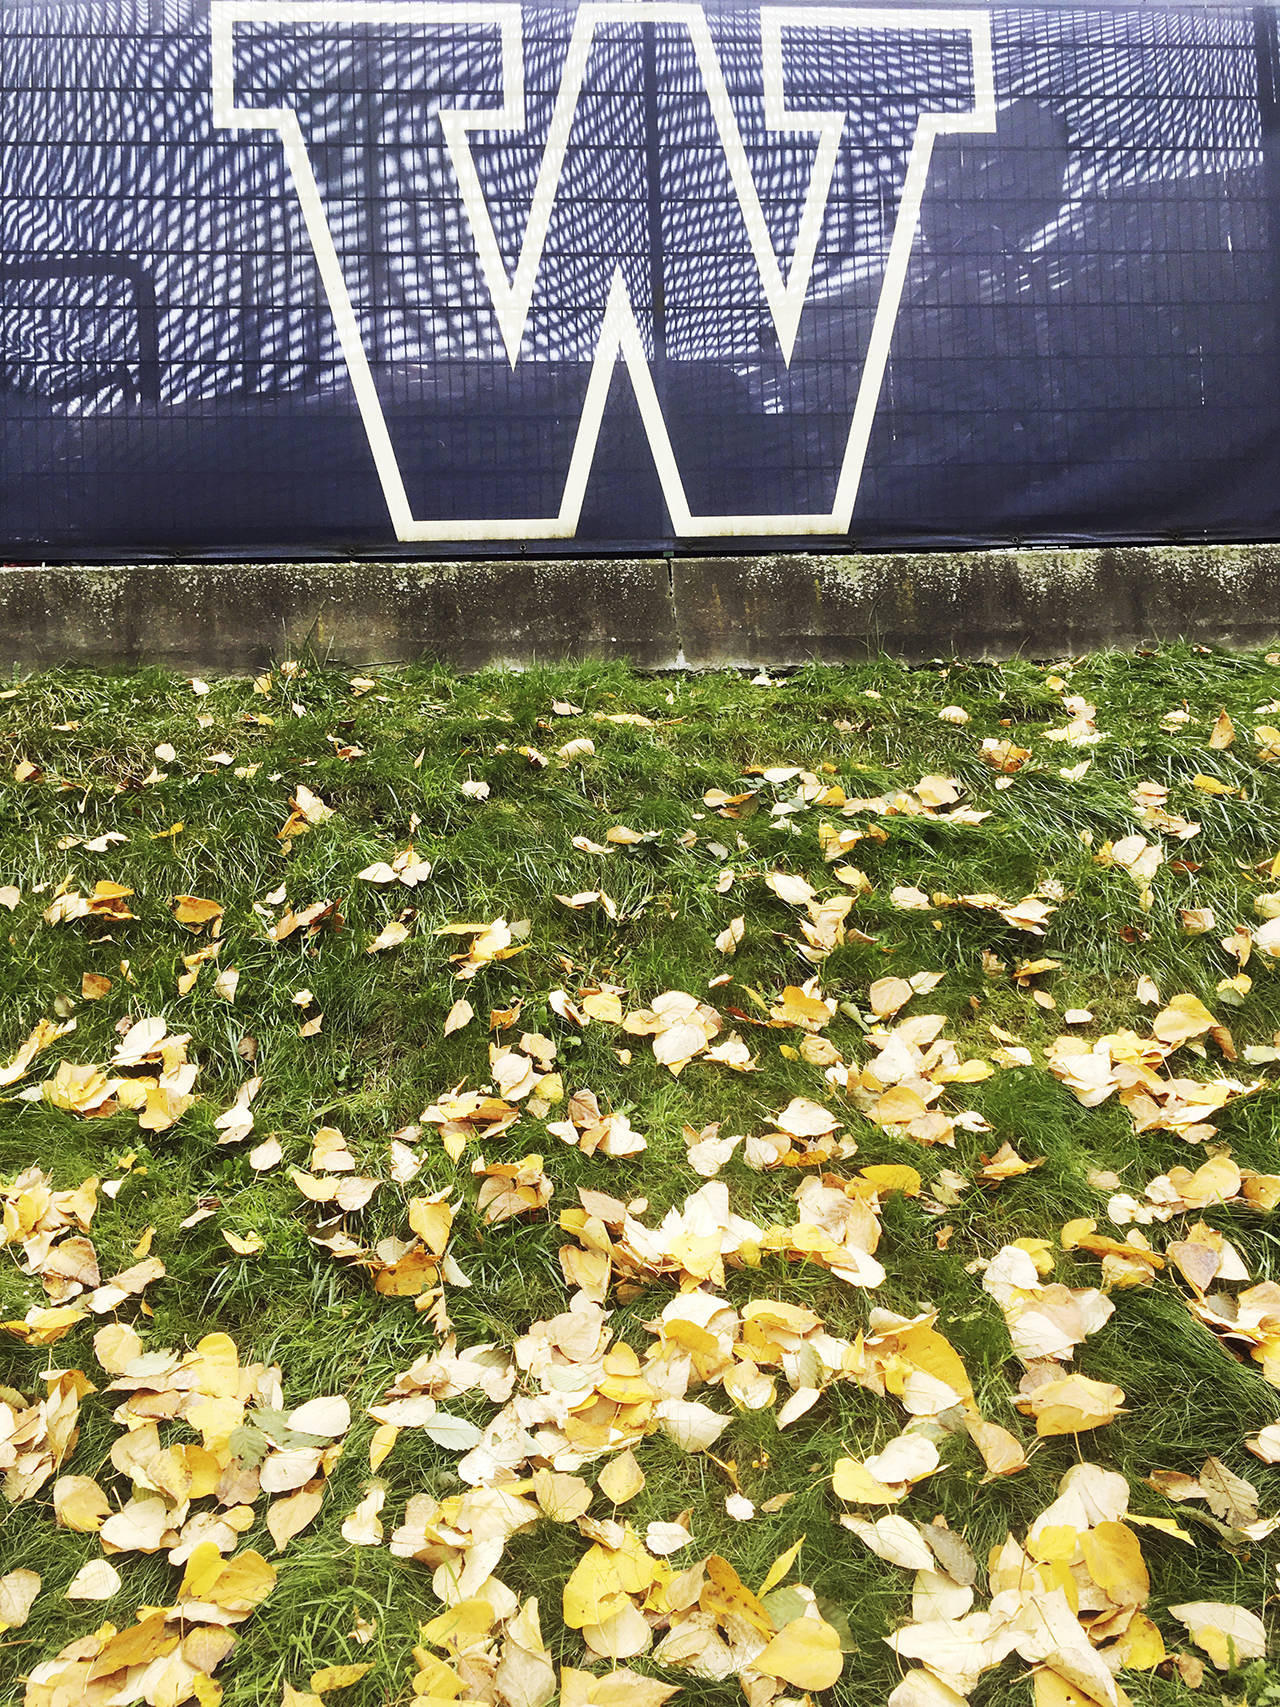 This photo shows the University of Washington campus in Seattle in the fall of 2017